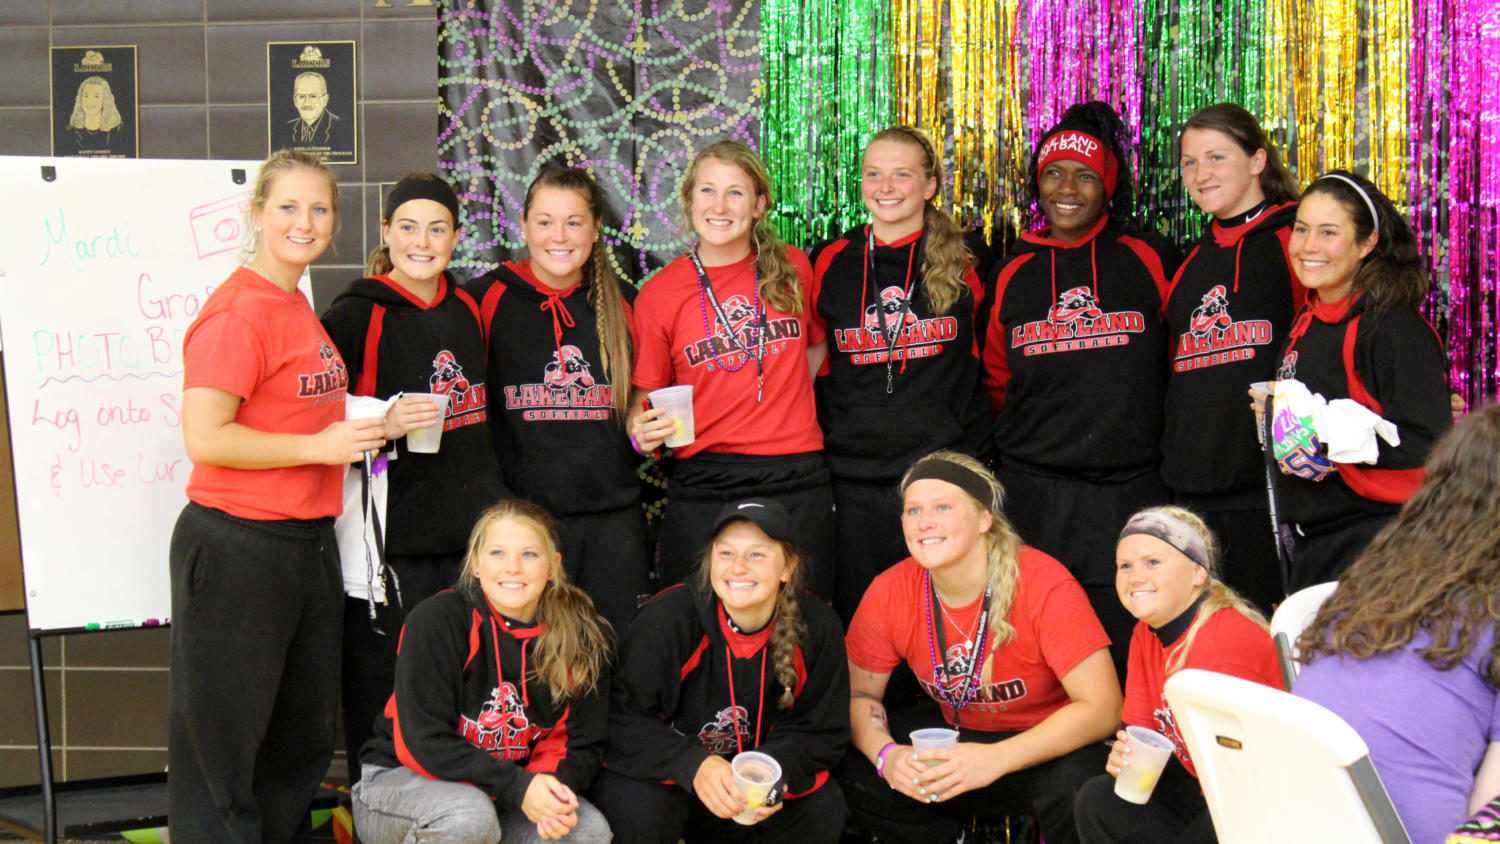 The softball team takes advantage of the Spring Carnival photo booth.